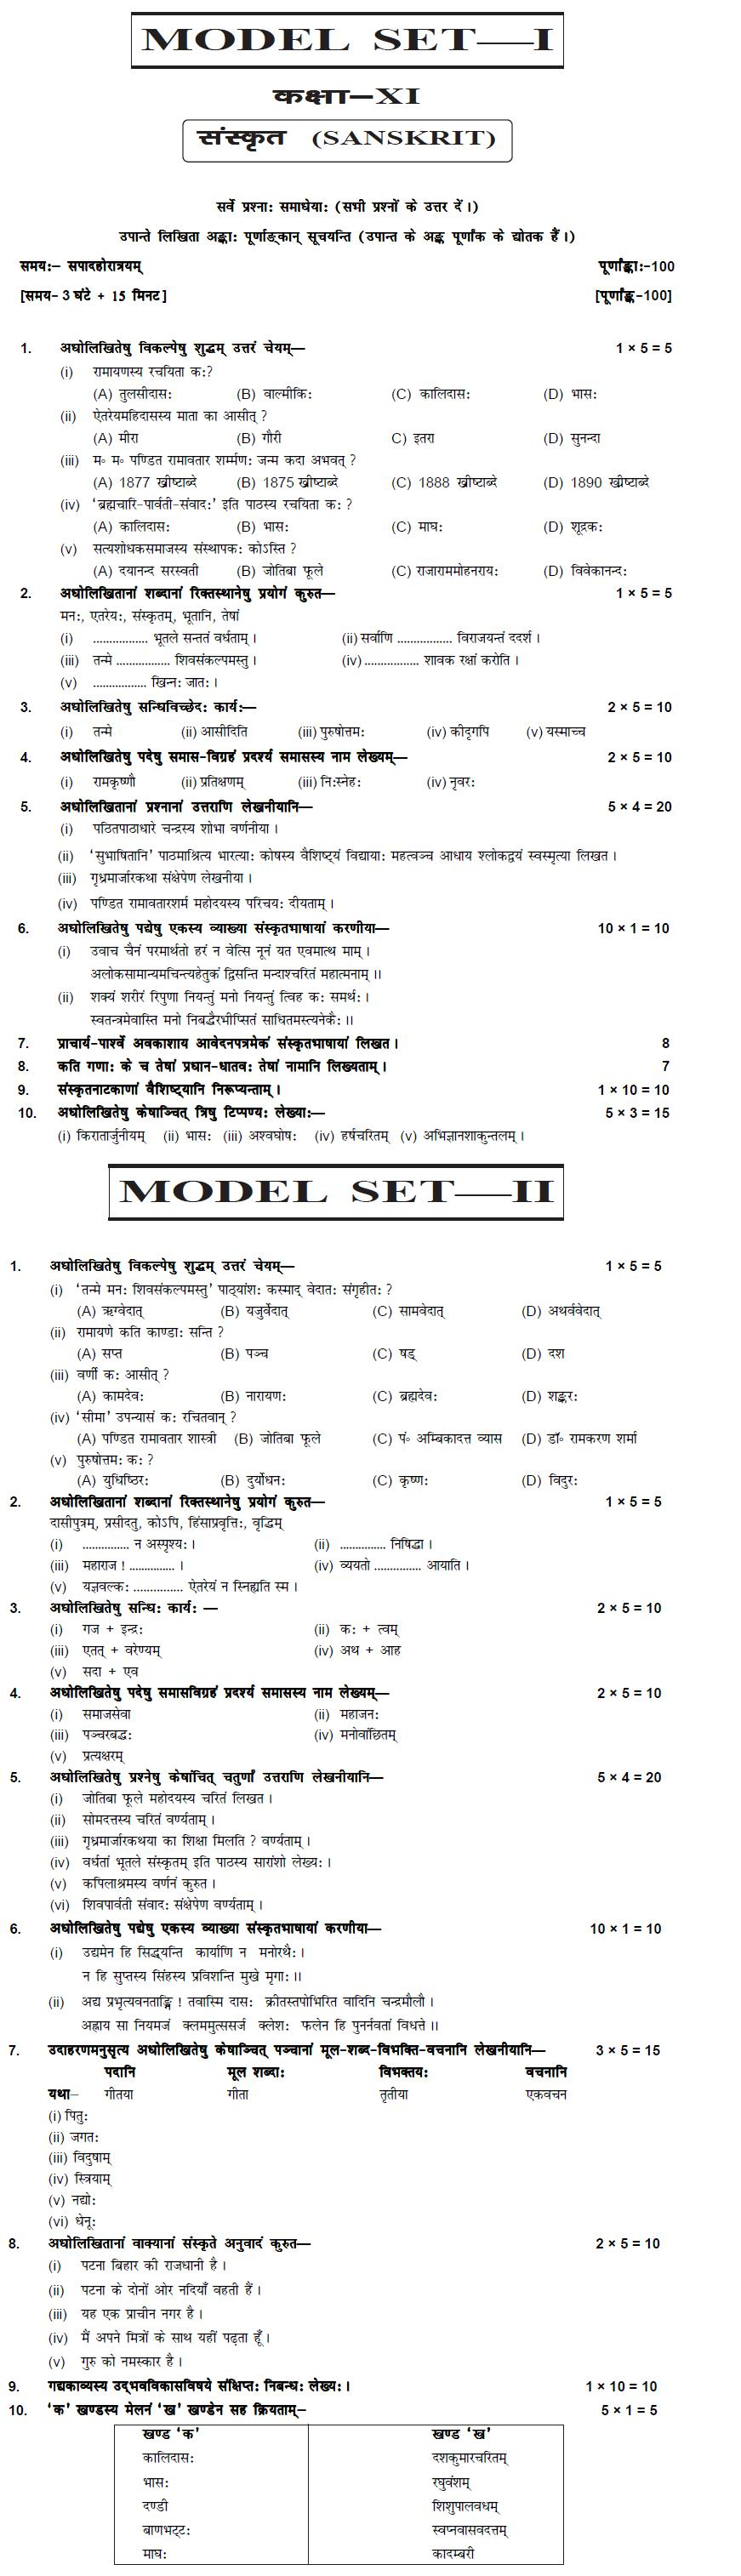 Bihar Board Class XI Humanities Model Question Papers - Sanskrit